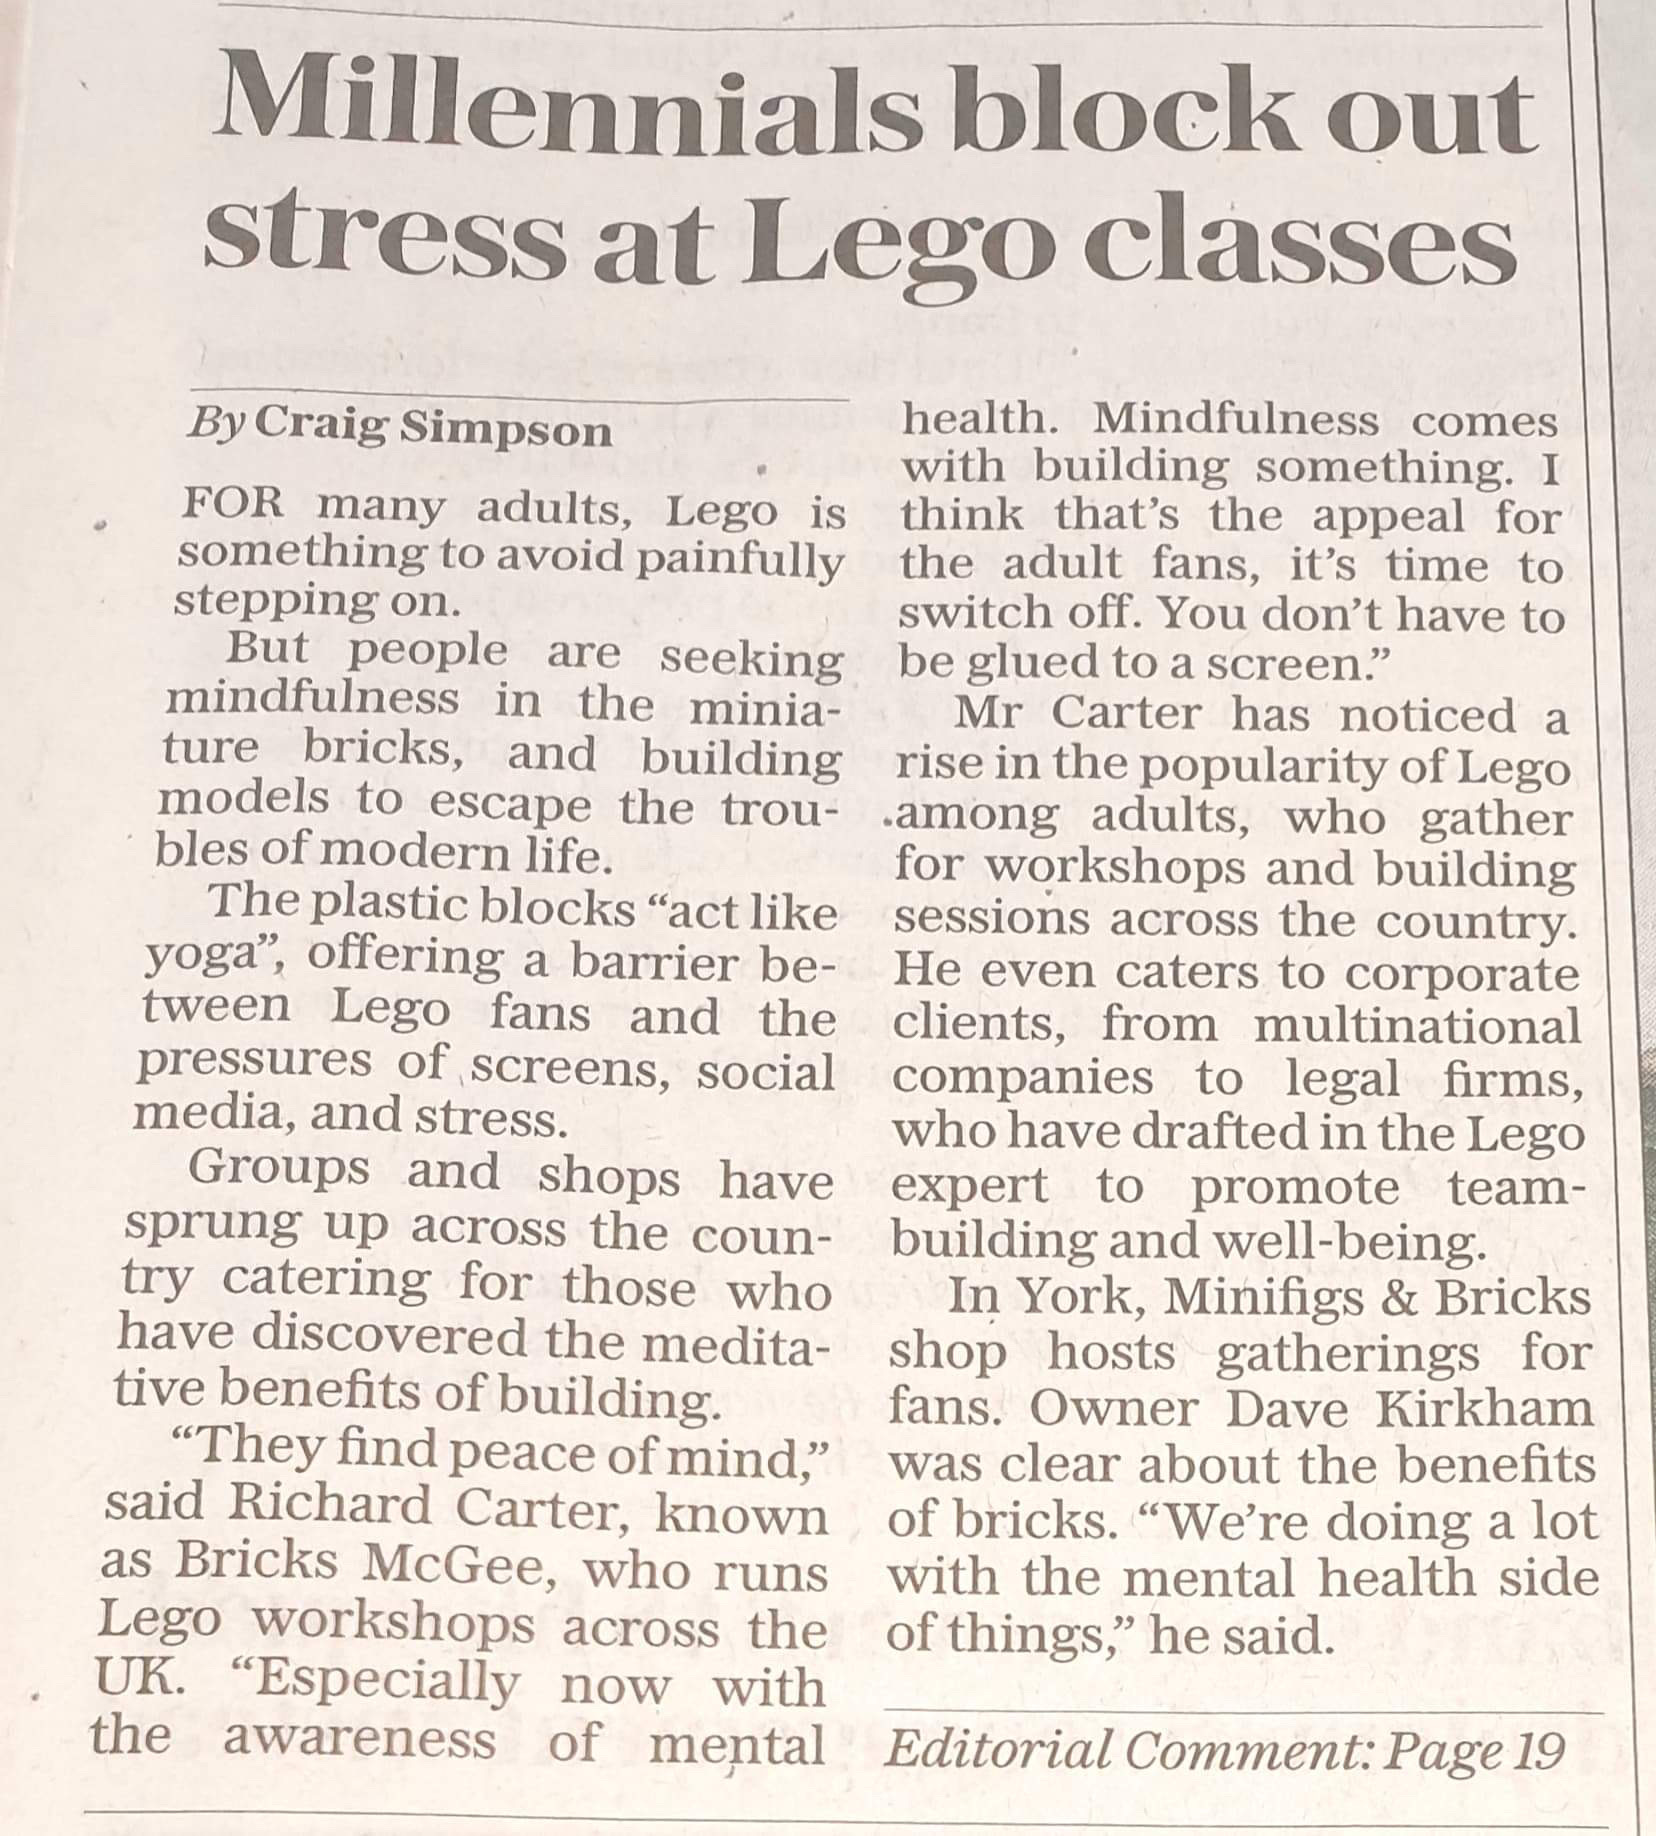 LEGO workshops in The Daily Telegraph